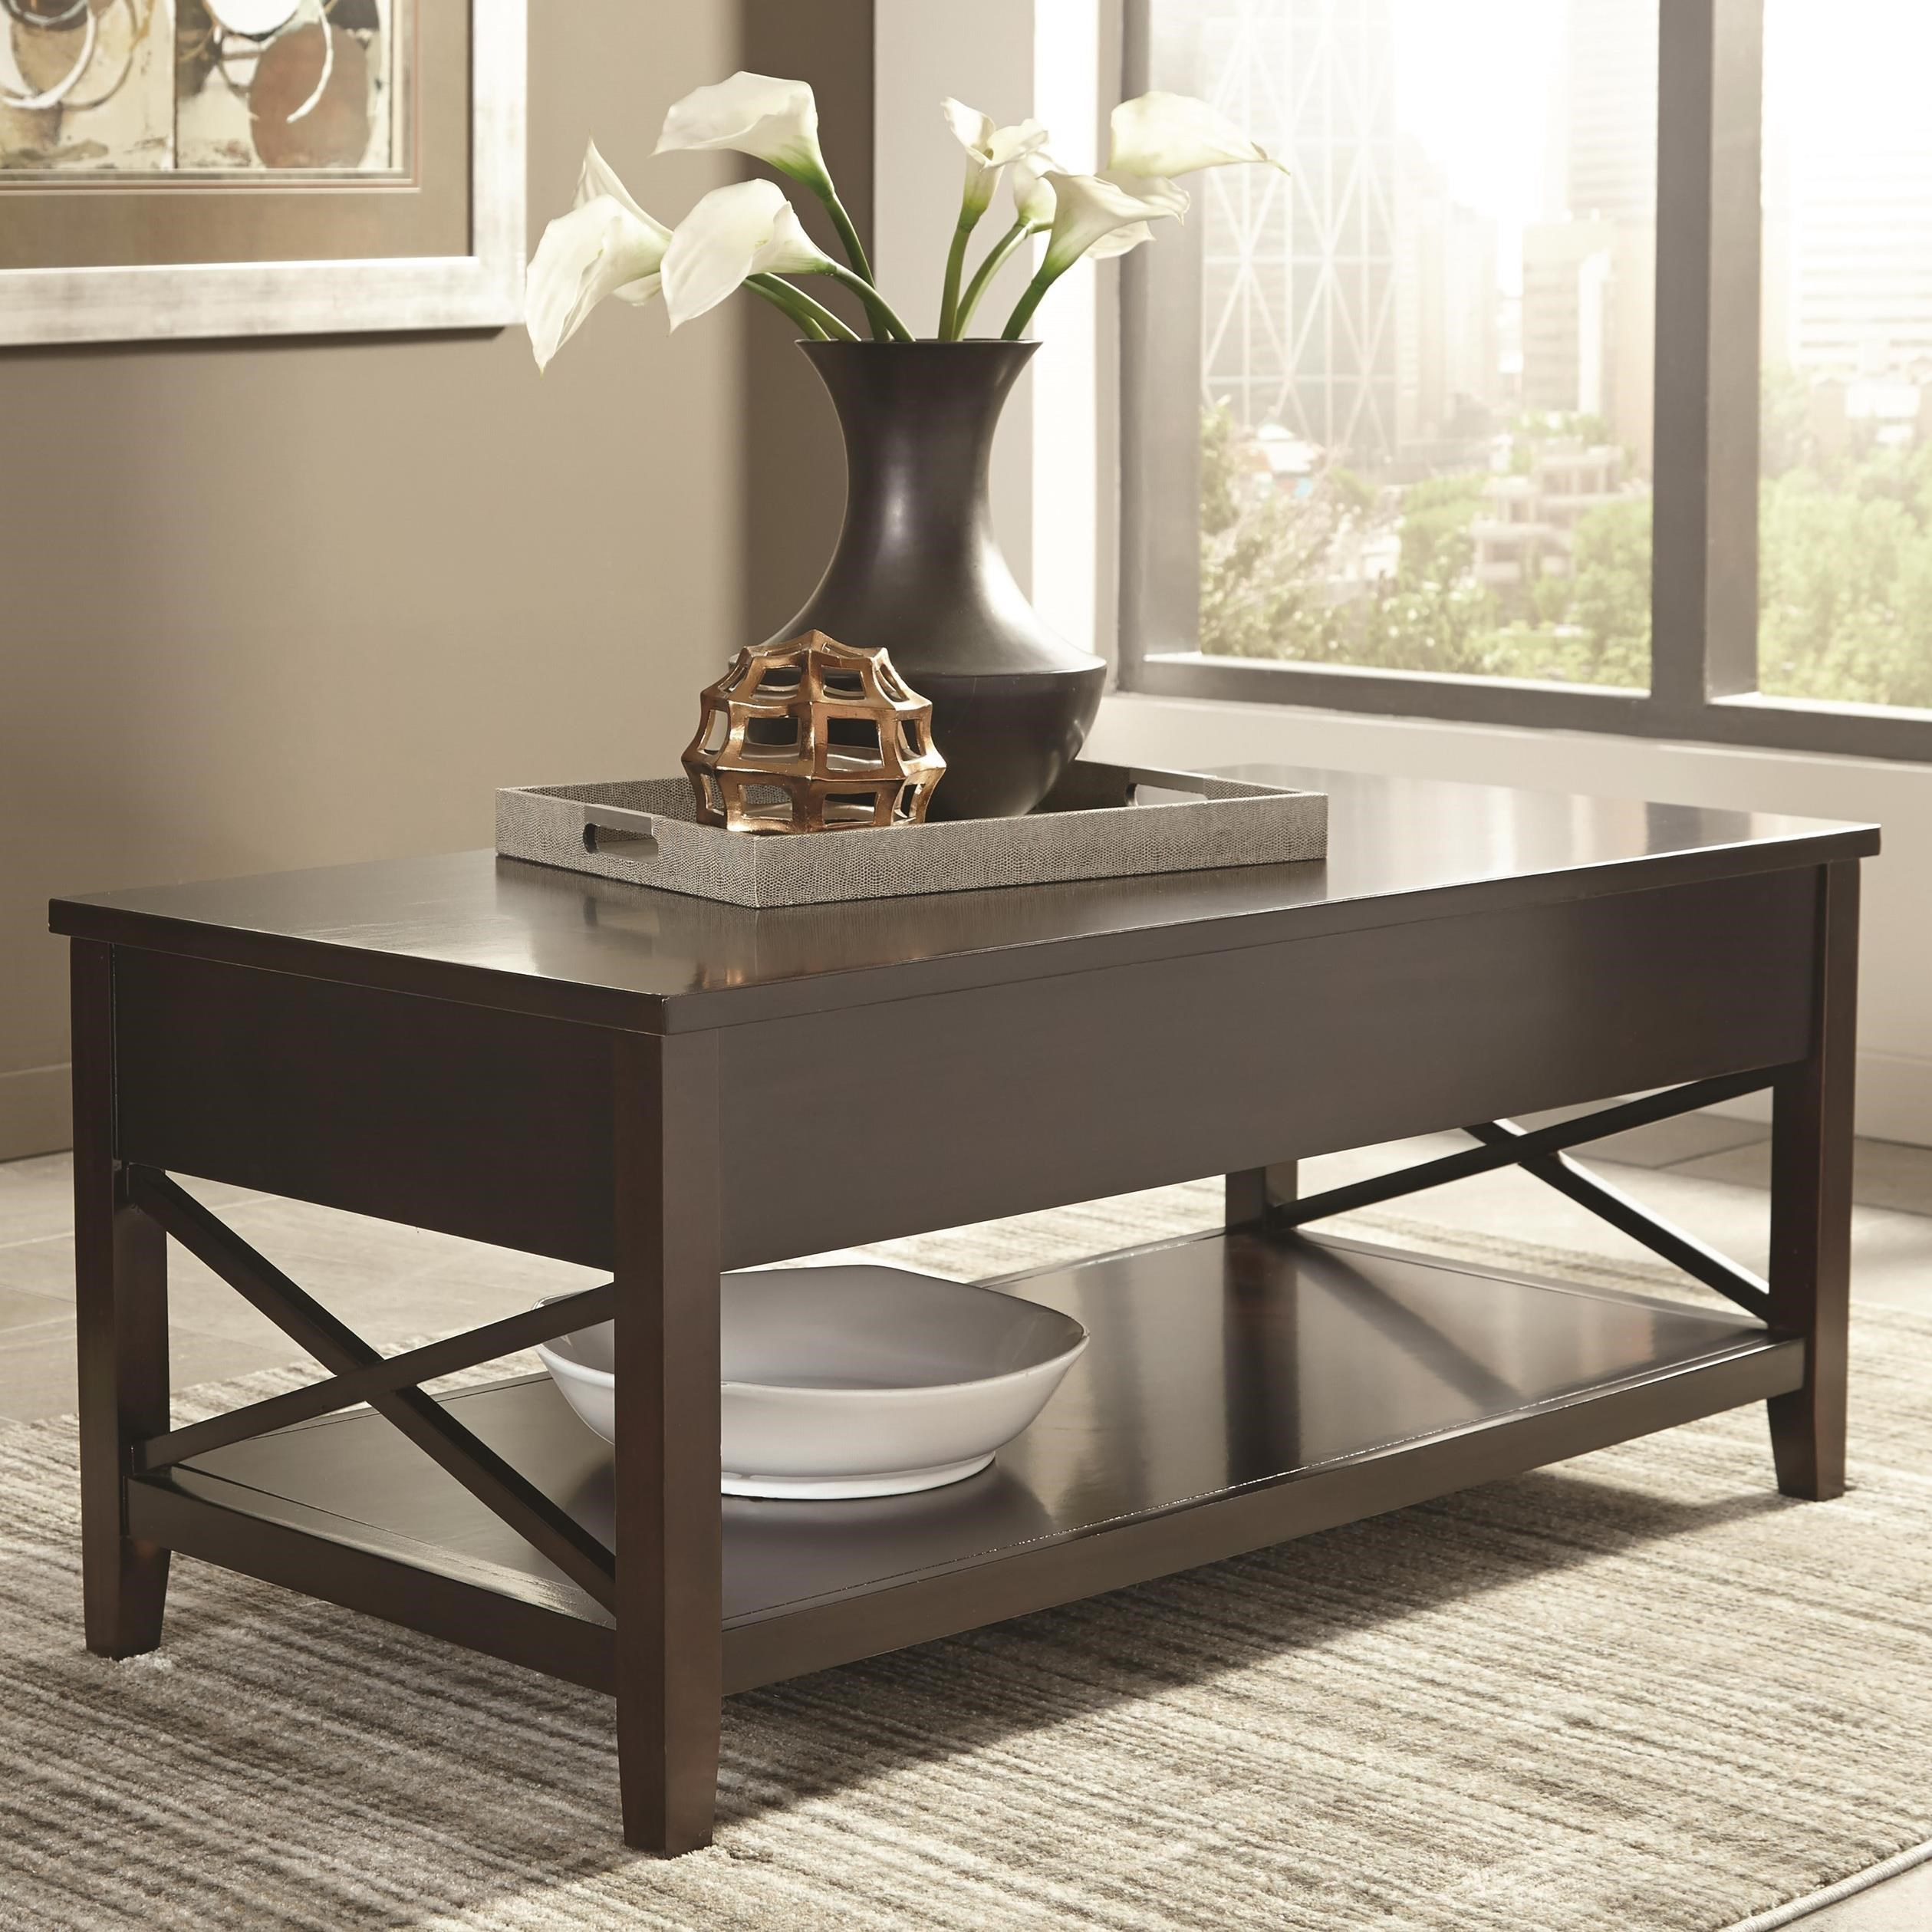 705688 transitional lift top coffee table